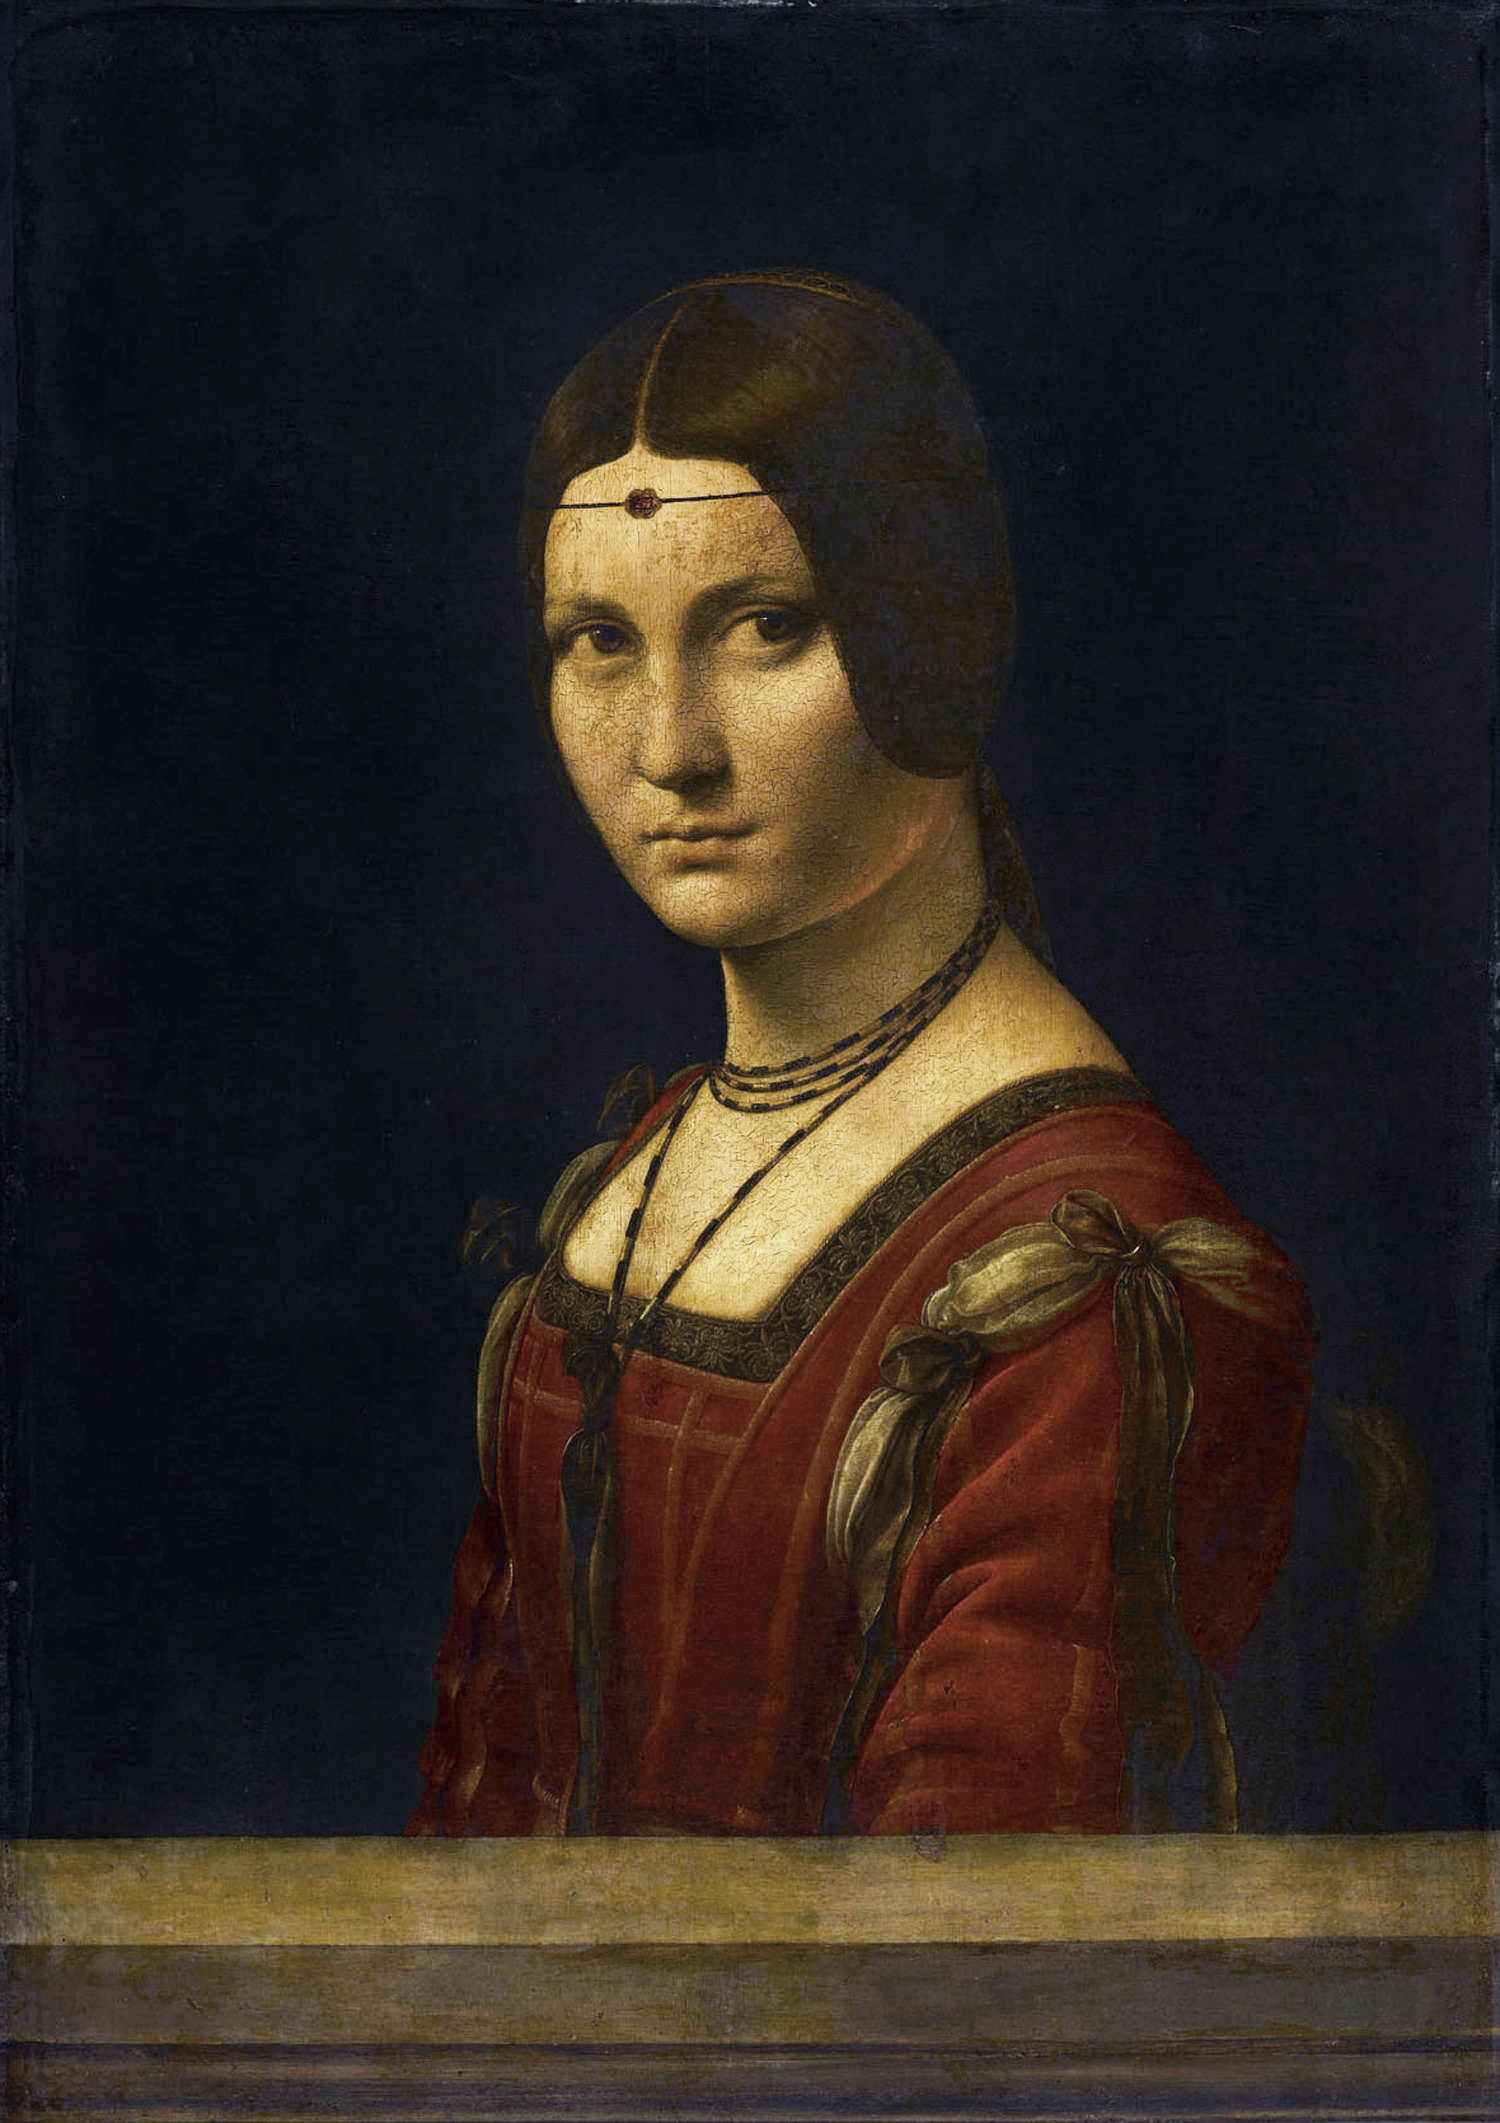 """""""Portrait of an Unknown Woman (La Belle Ferronière)"""" in 1490-95 attributed to Leonardo da Vinci (Vinci 1452-Amboise 1519). Oil on wood. Musée du Louvre. Renaissance. The model of the painting is still shrouded in mystery. The work reflects the intense optical study of the period in Milan."""